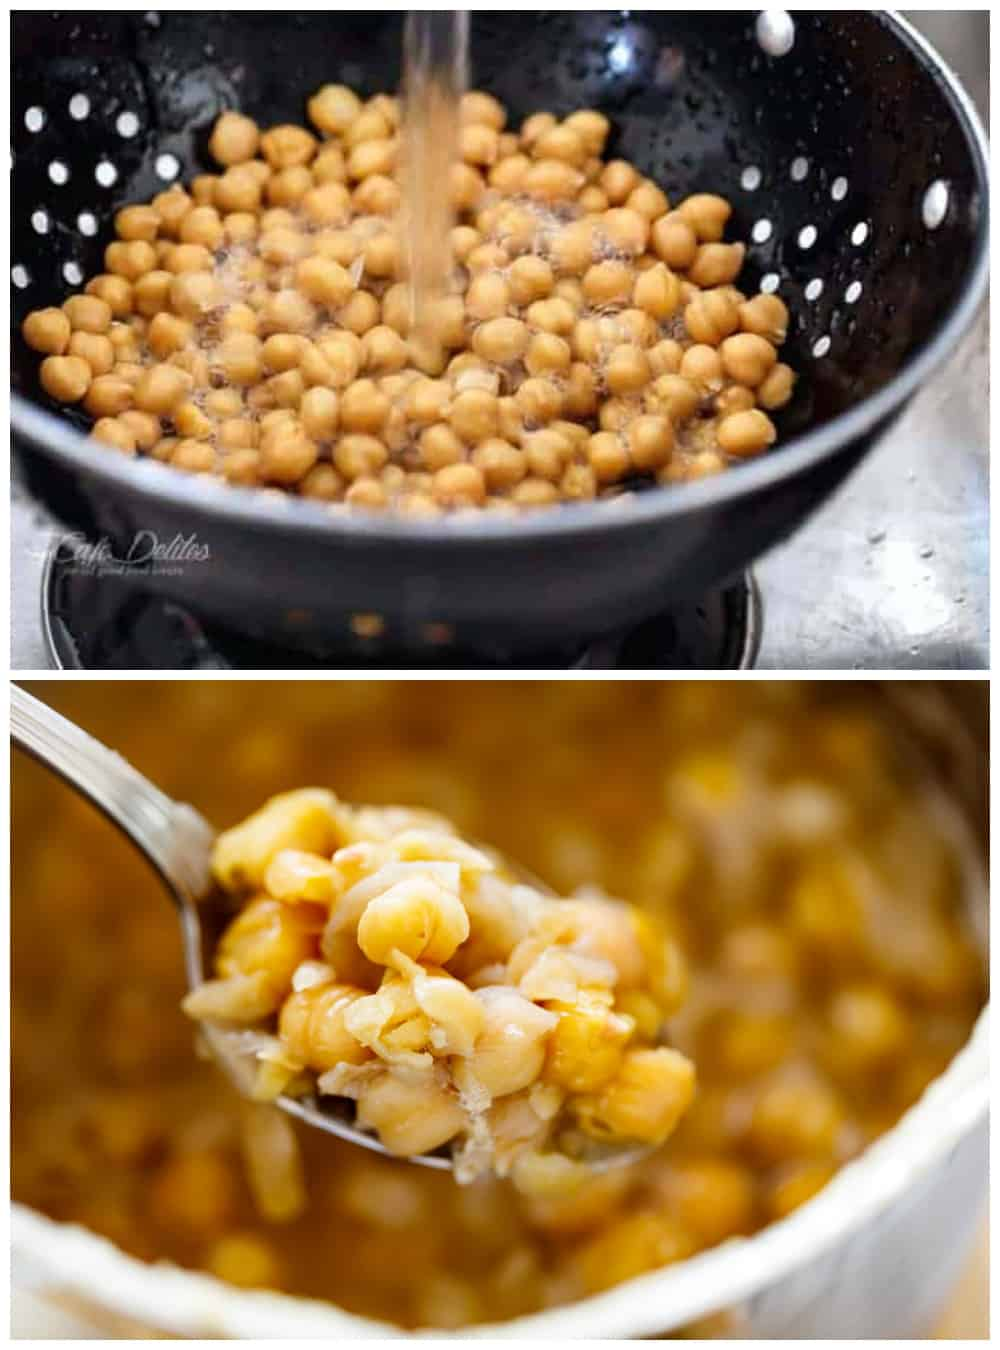 How to make avocado hummus in a collage. Top image: washing chickpeas in a black strainer under cold running water. Bottom image: A spoon holding boiled chickpeas softened, just above a blurred pot full of boiled chickpeas.